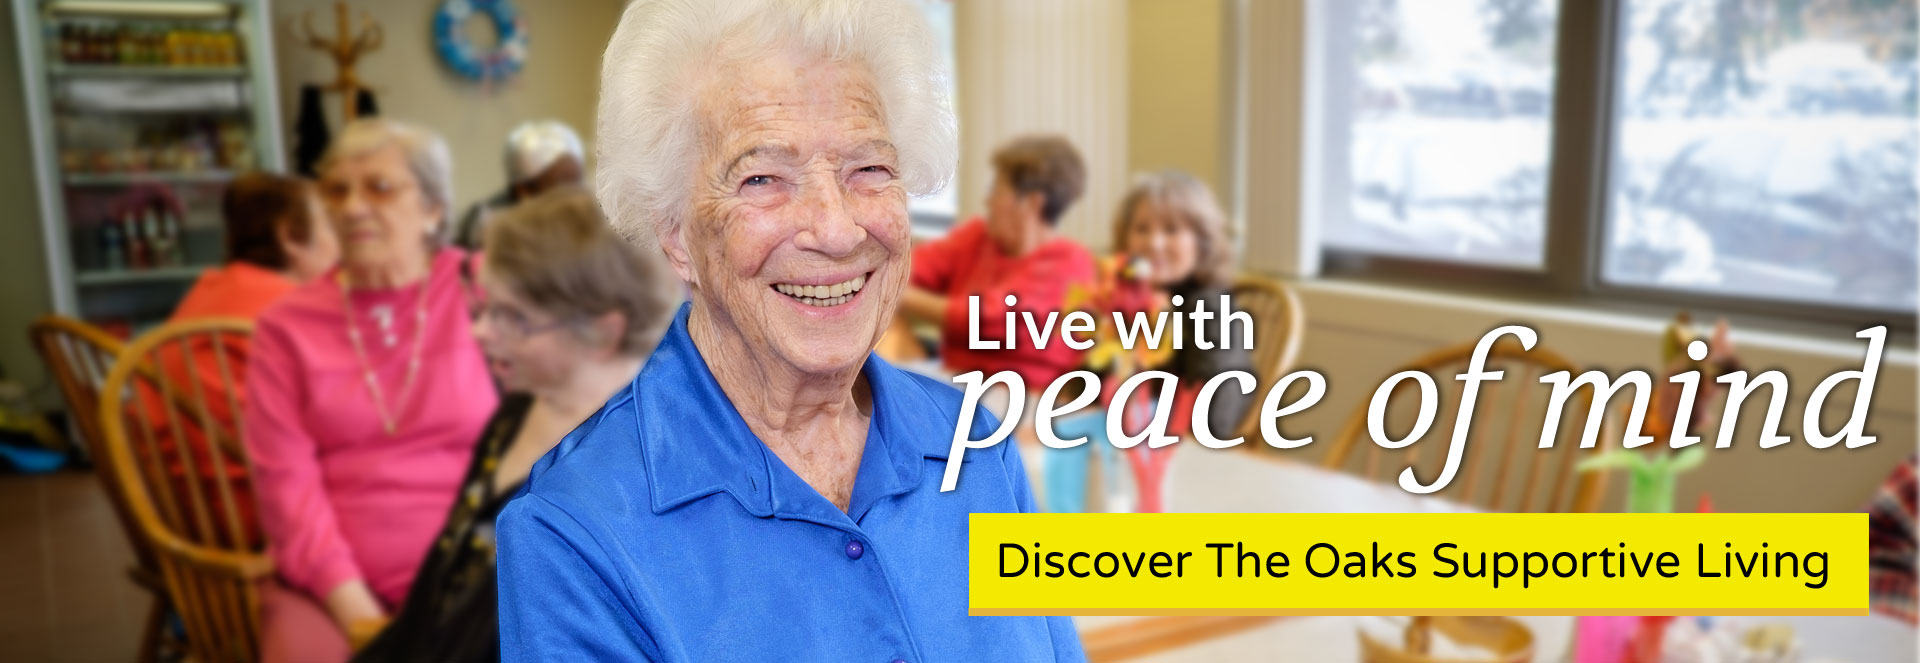 Live with peace of mind: Discover Joliet Supportive Living